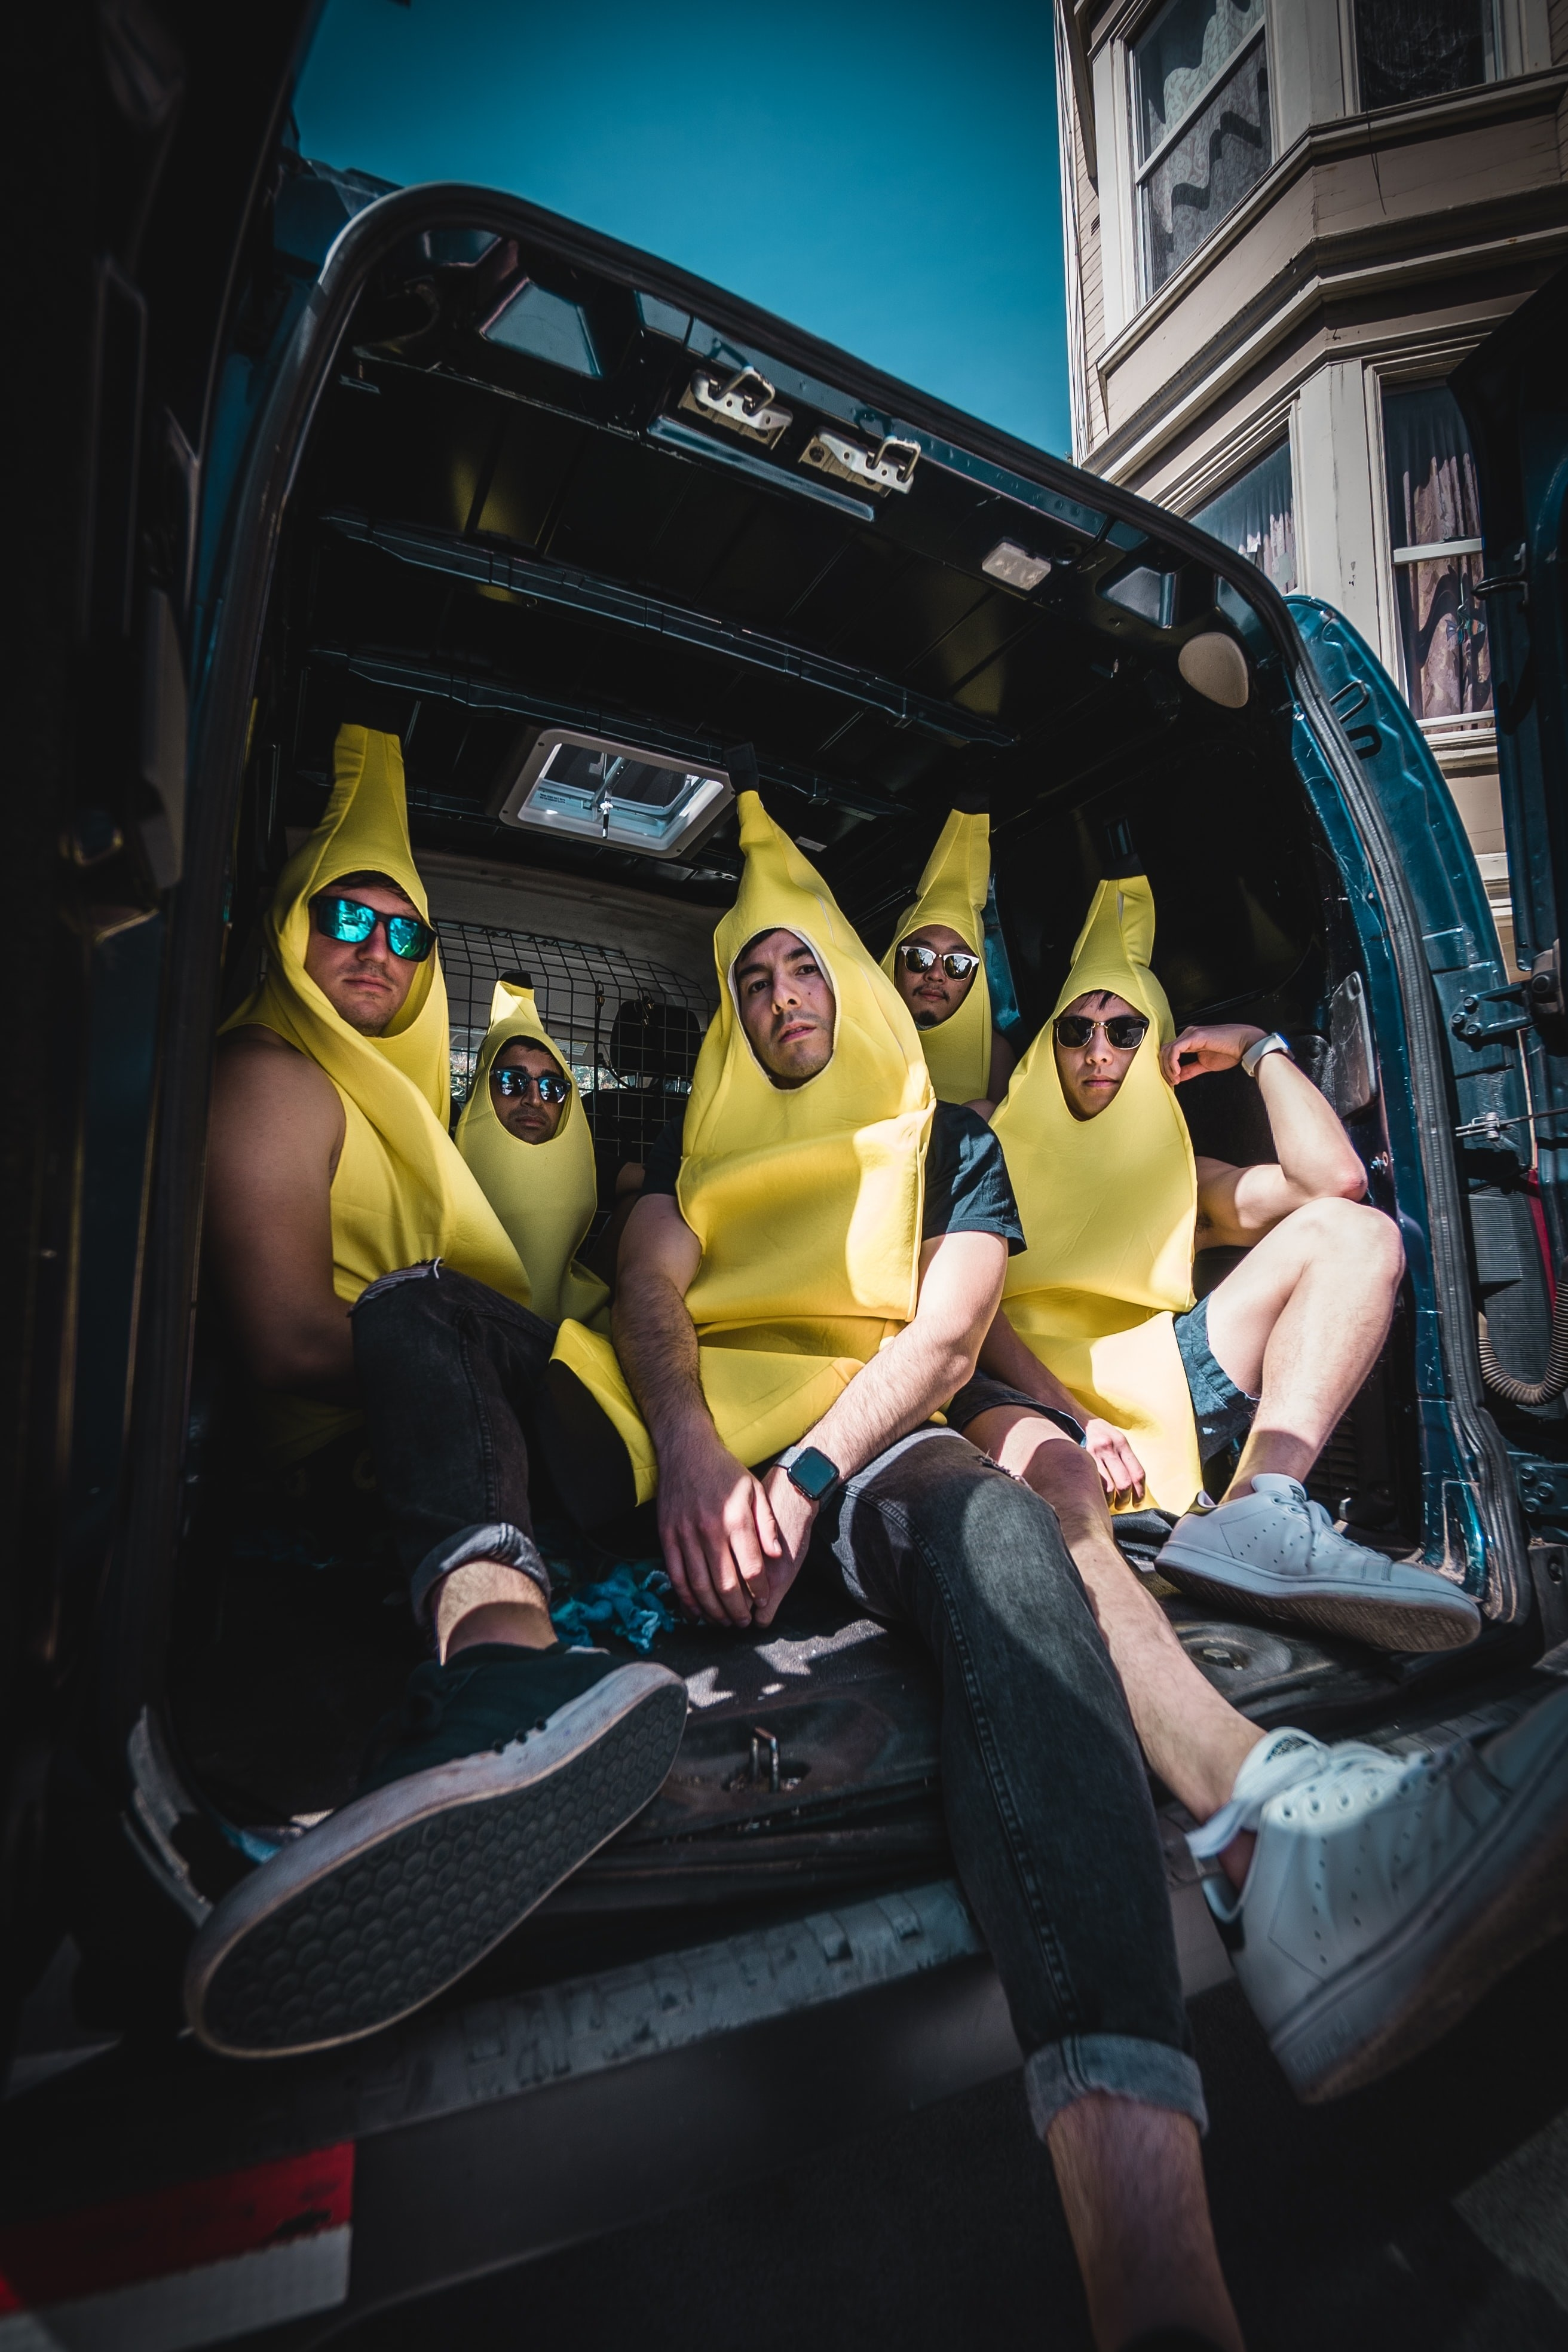 Five white men dressed in banana suits are sitting in the back of a van